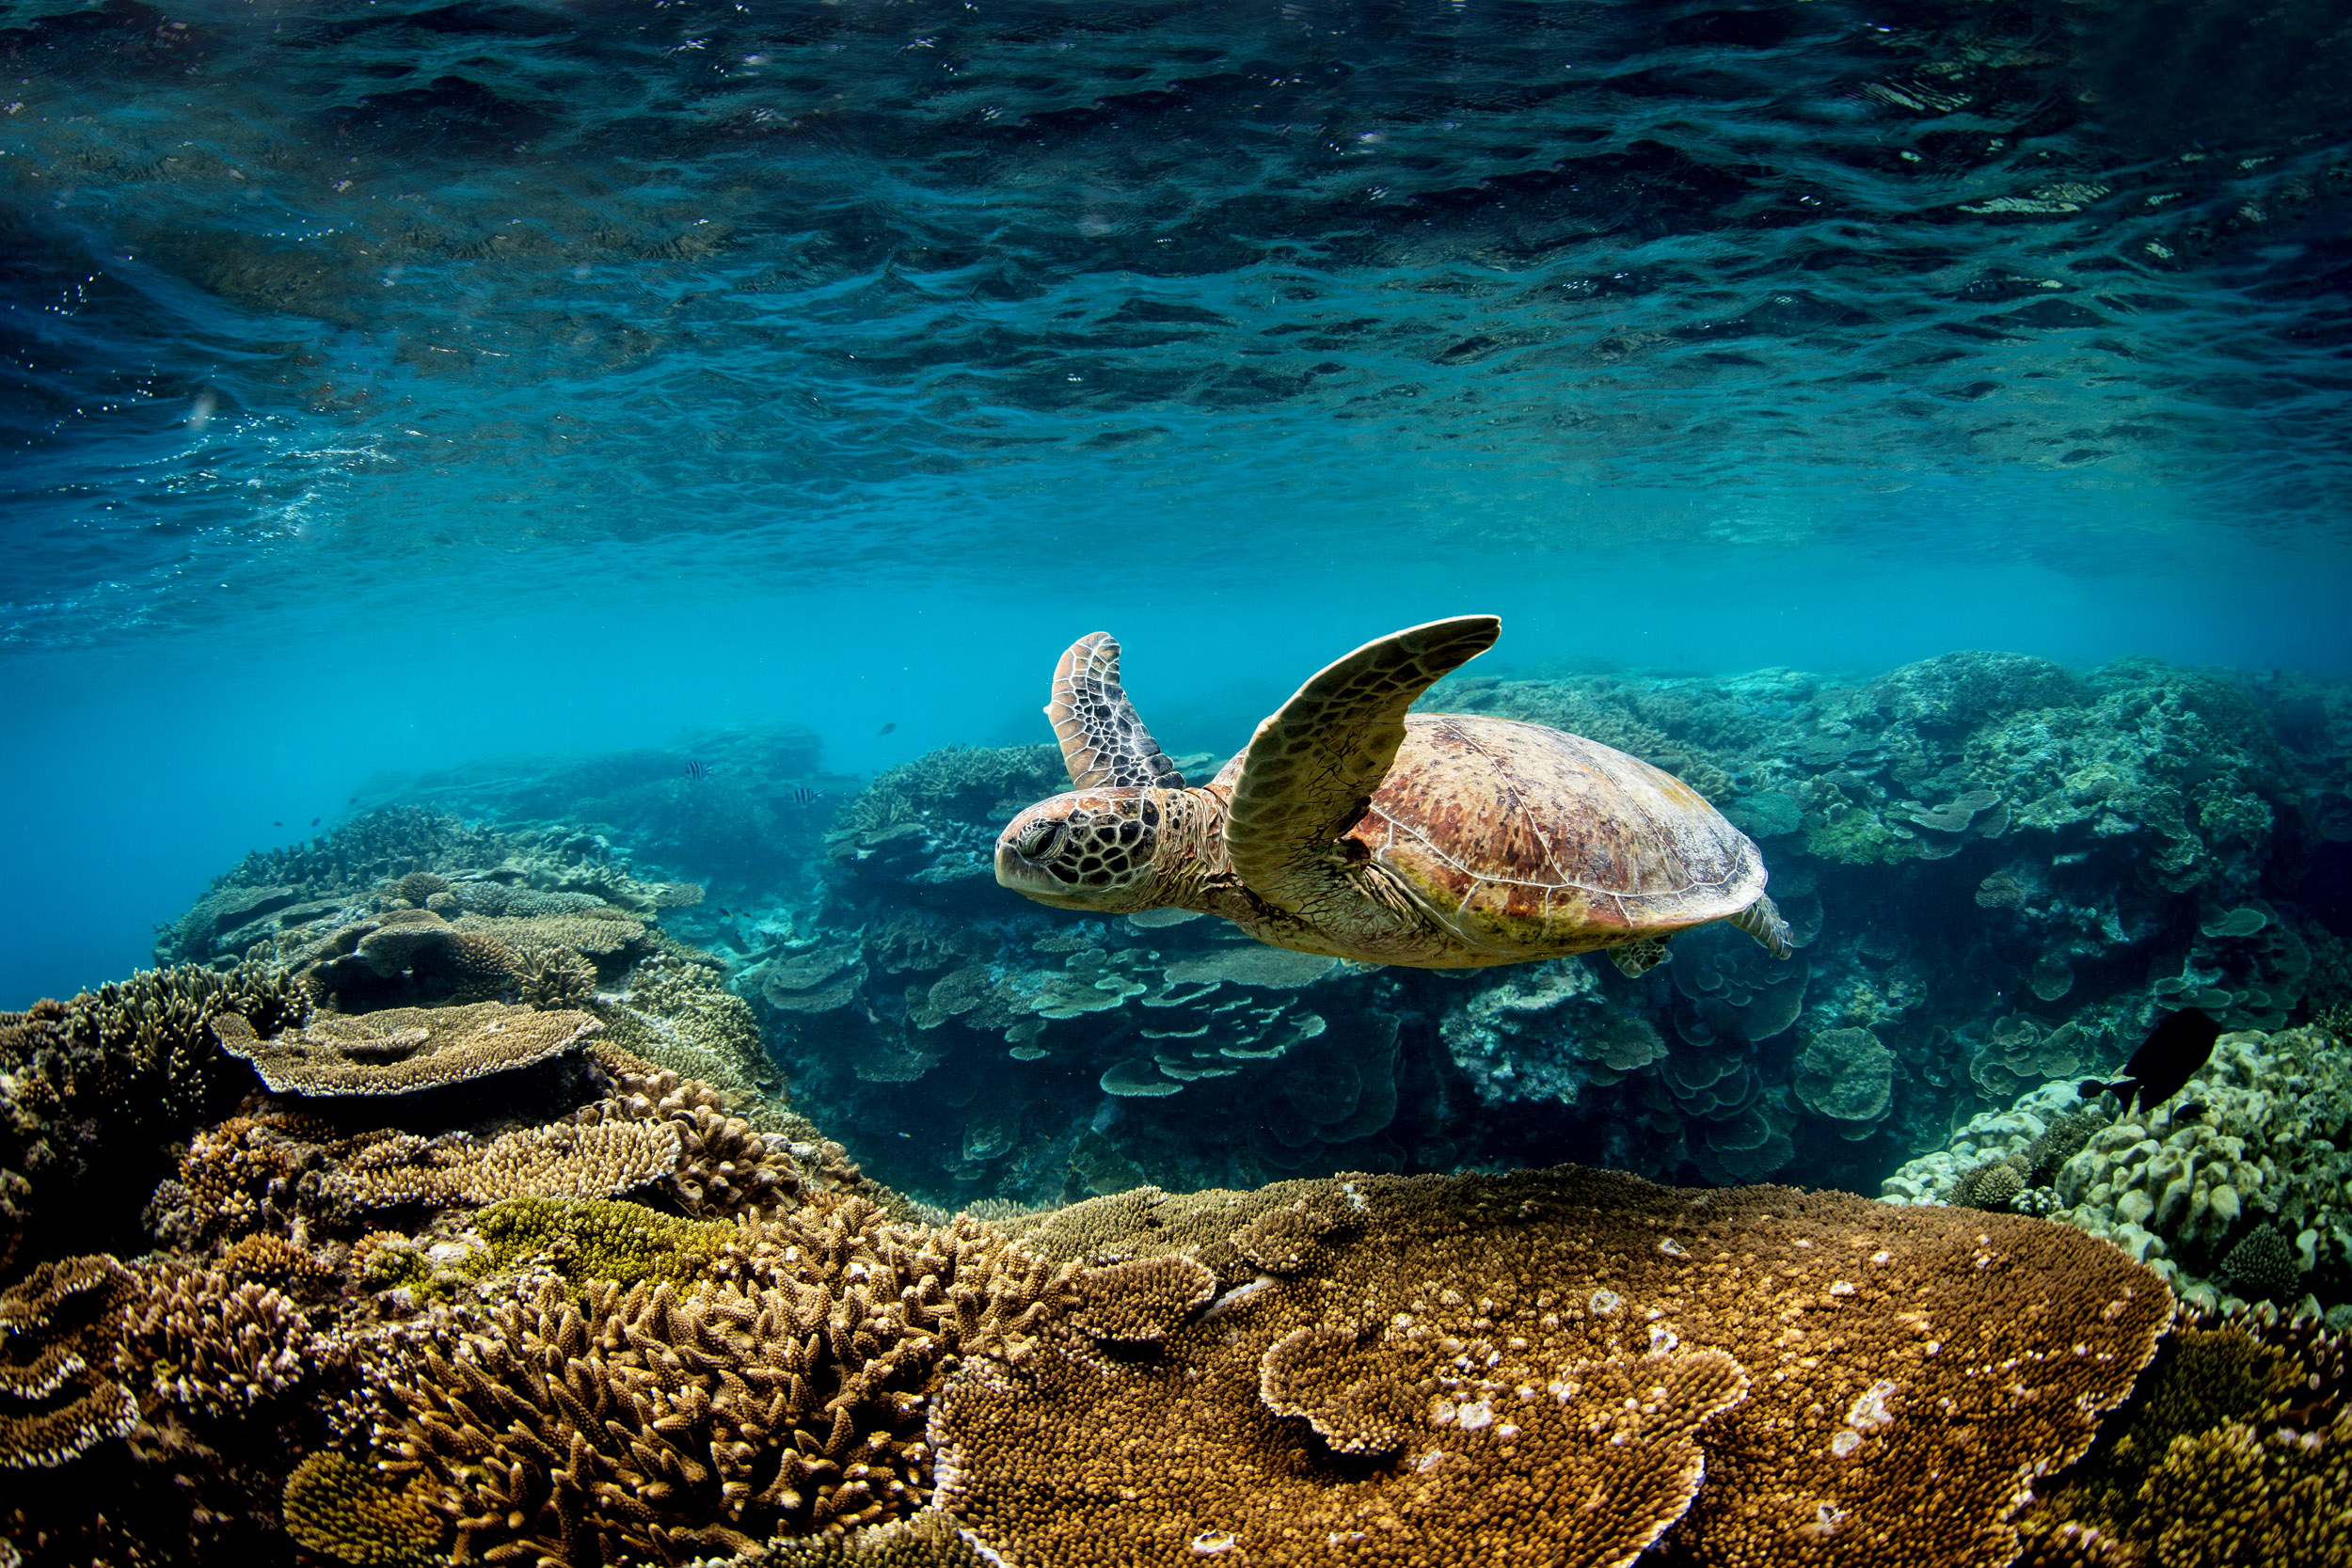 turtles-great-barrier-reef-queensland.jpg